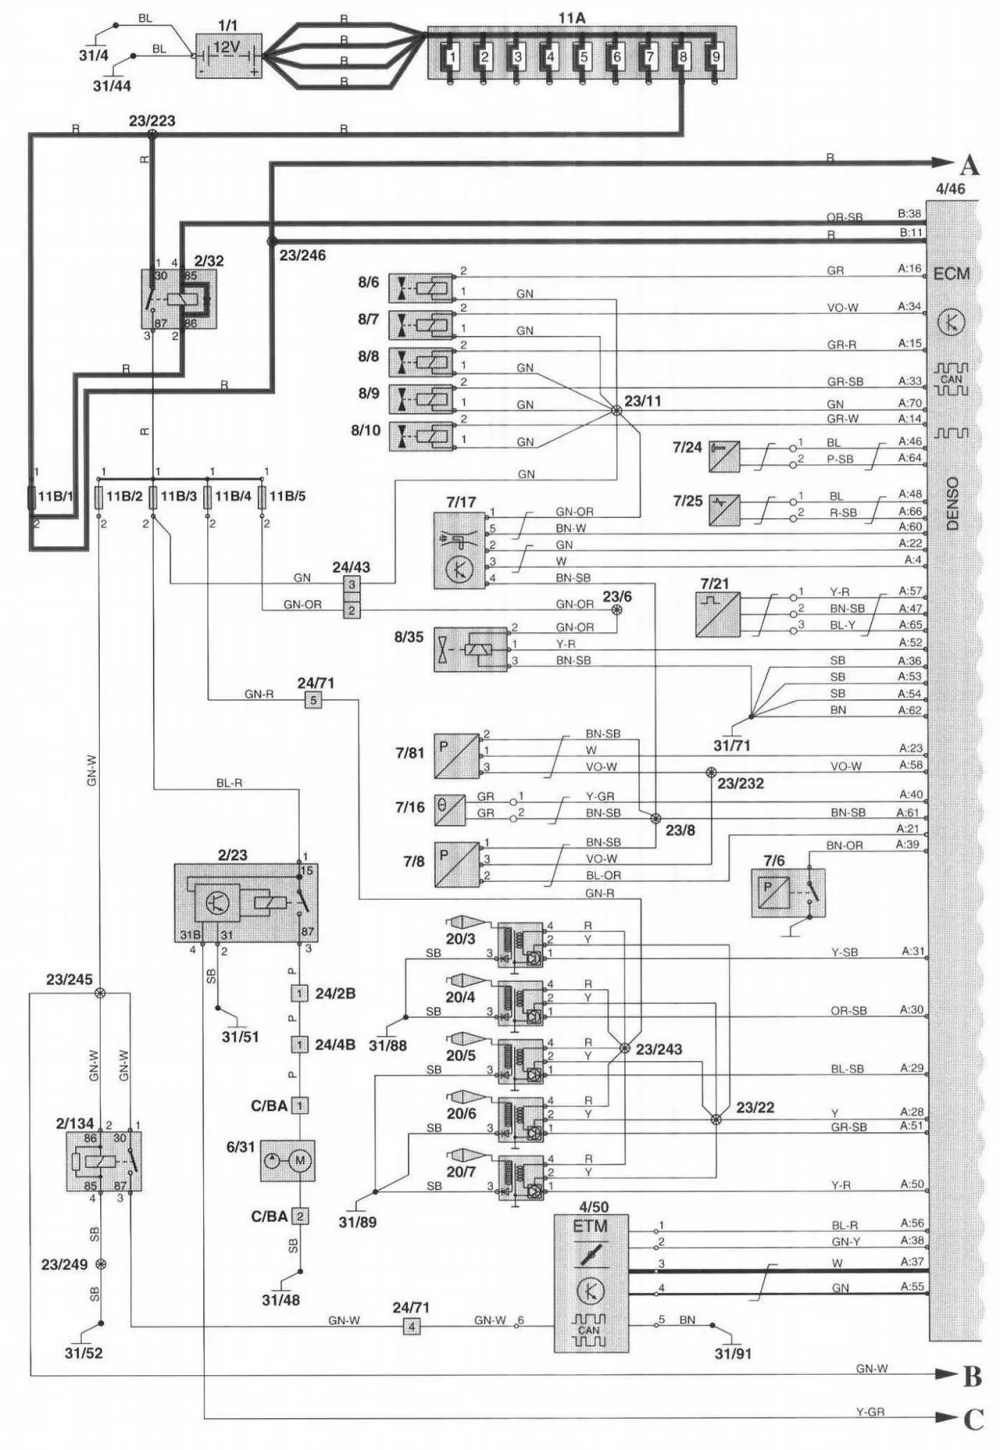 medium resolution of s60 relay switch wiring diagram wiring diagrams60 relay switch wiring diagram go wiring diagrams60 relay switch